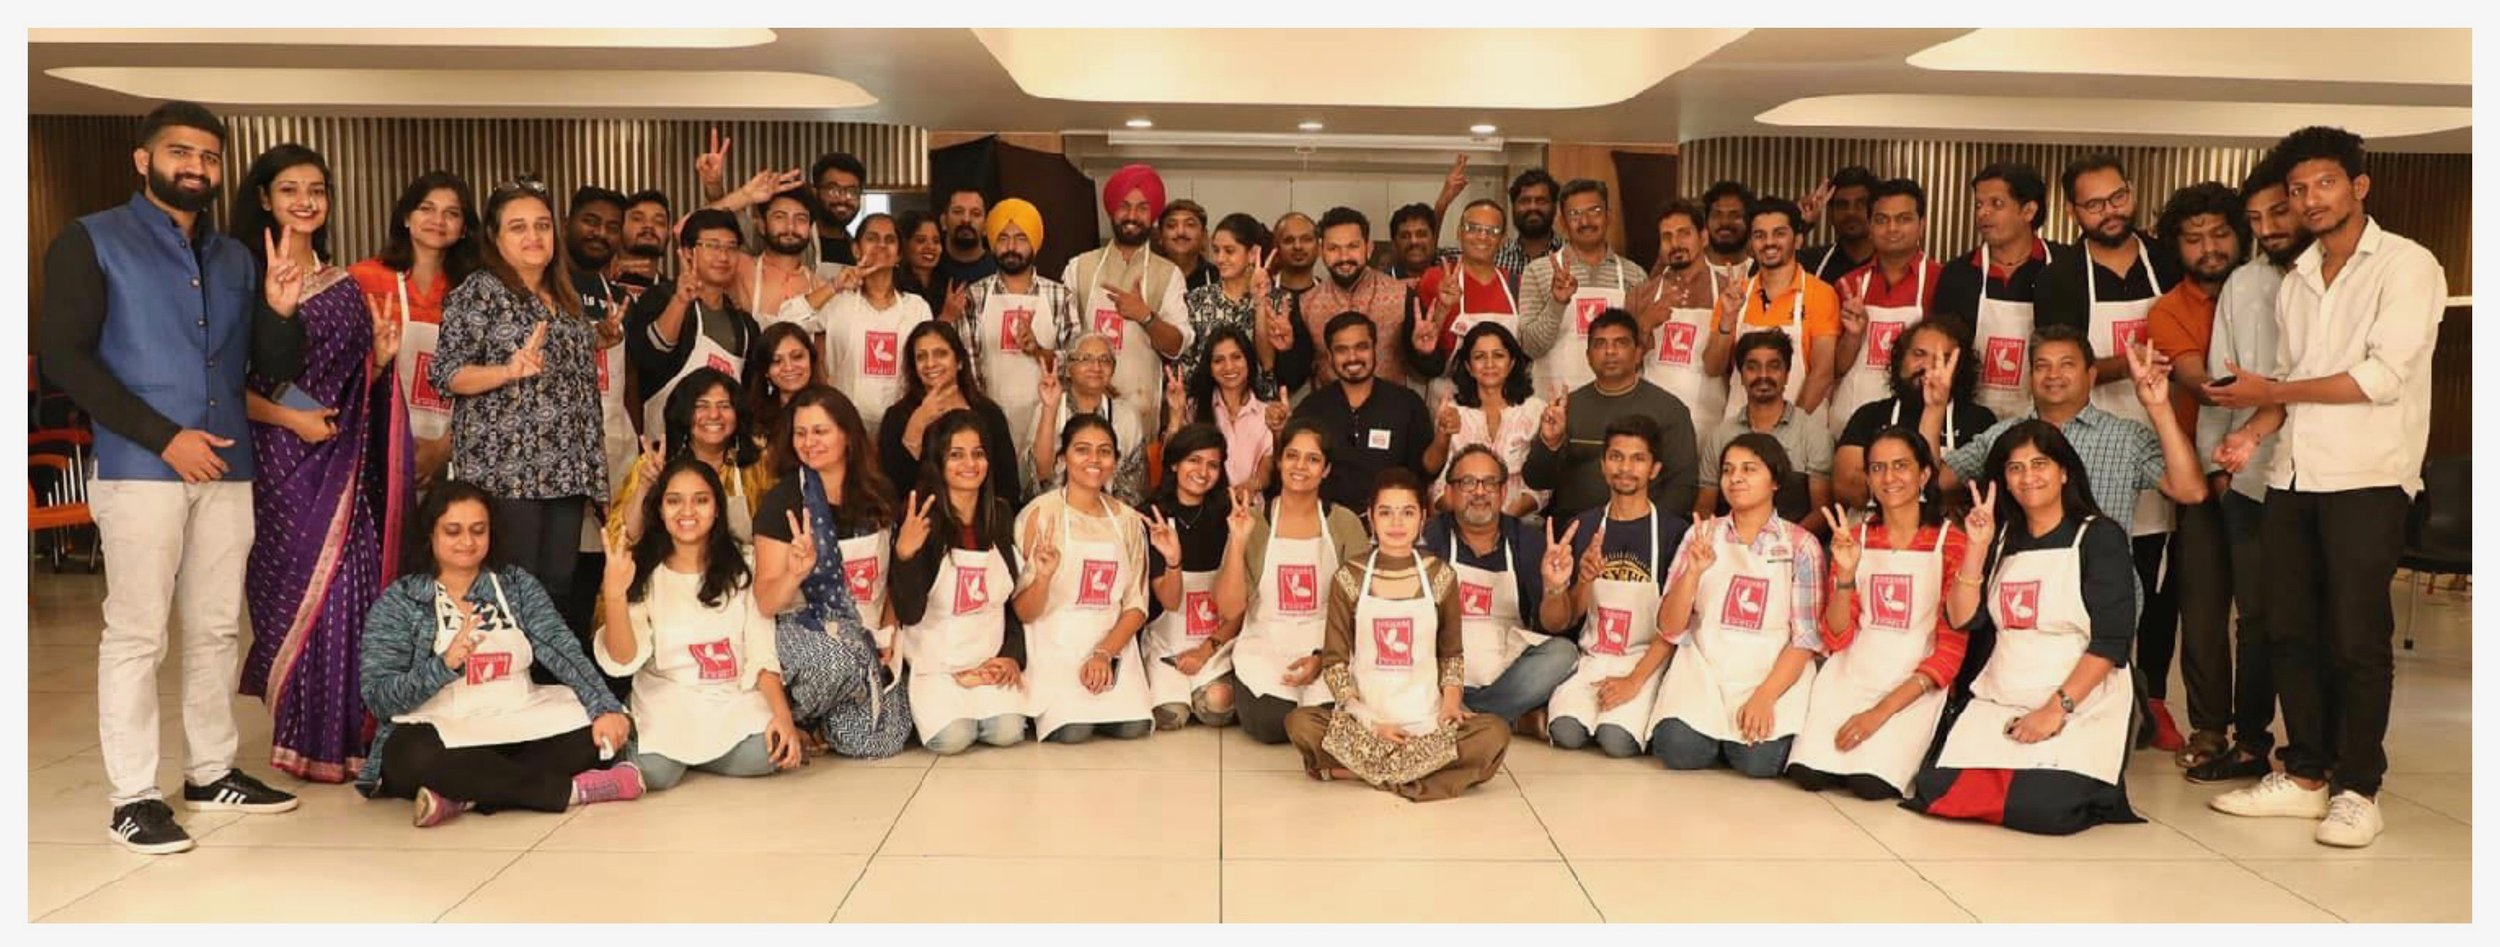 The whole gang! What a wonderful experience to meet your 'tribe'. Friends made, common interests discovered, knowledge shared, groups formed..a great time in all! Thanks to the team of Suchitra, Pramod, organiser Jaspreet & the other volunteers. Here's to many such more! :)